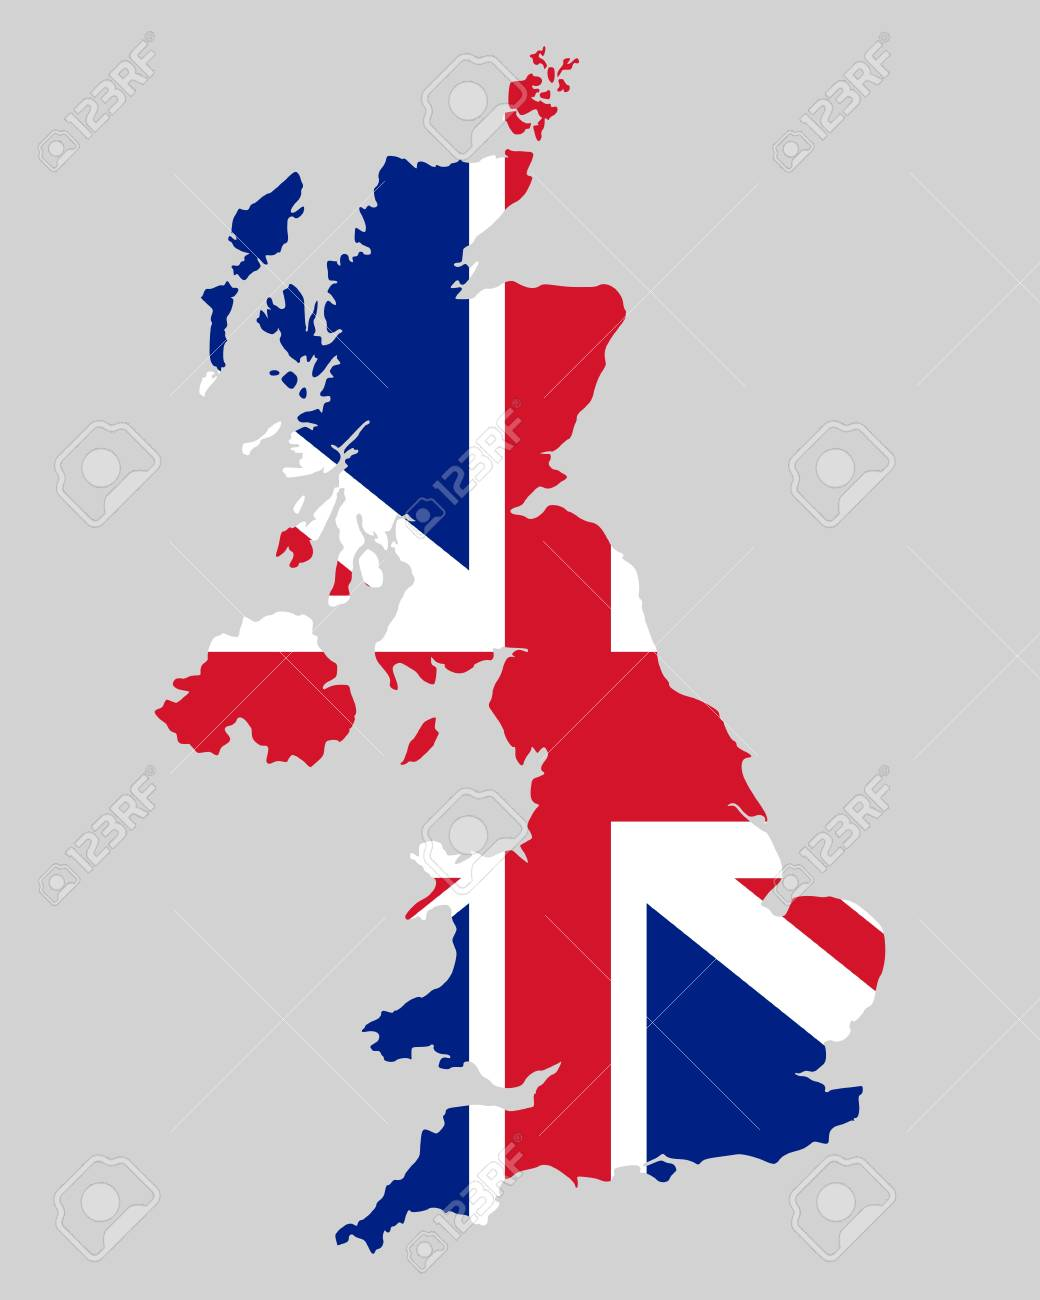 Map and flag of United Kingdom - 16162324